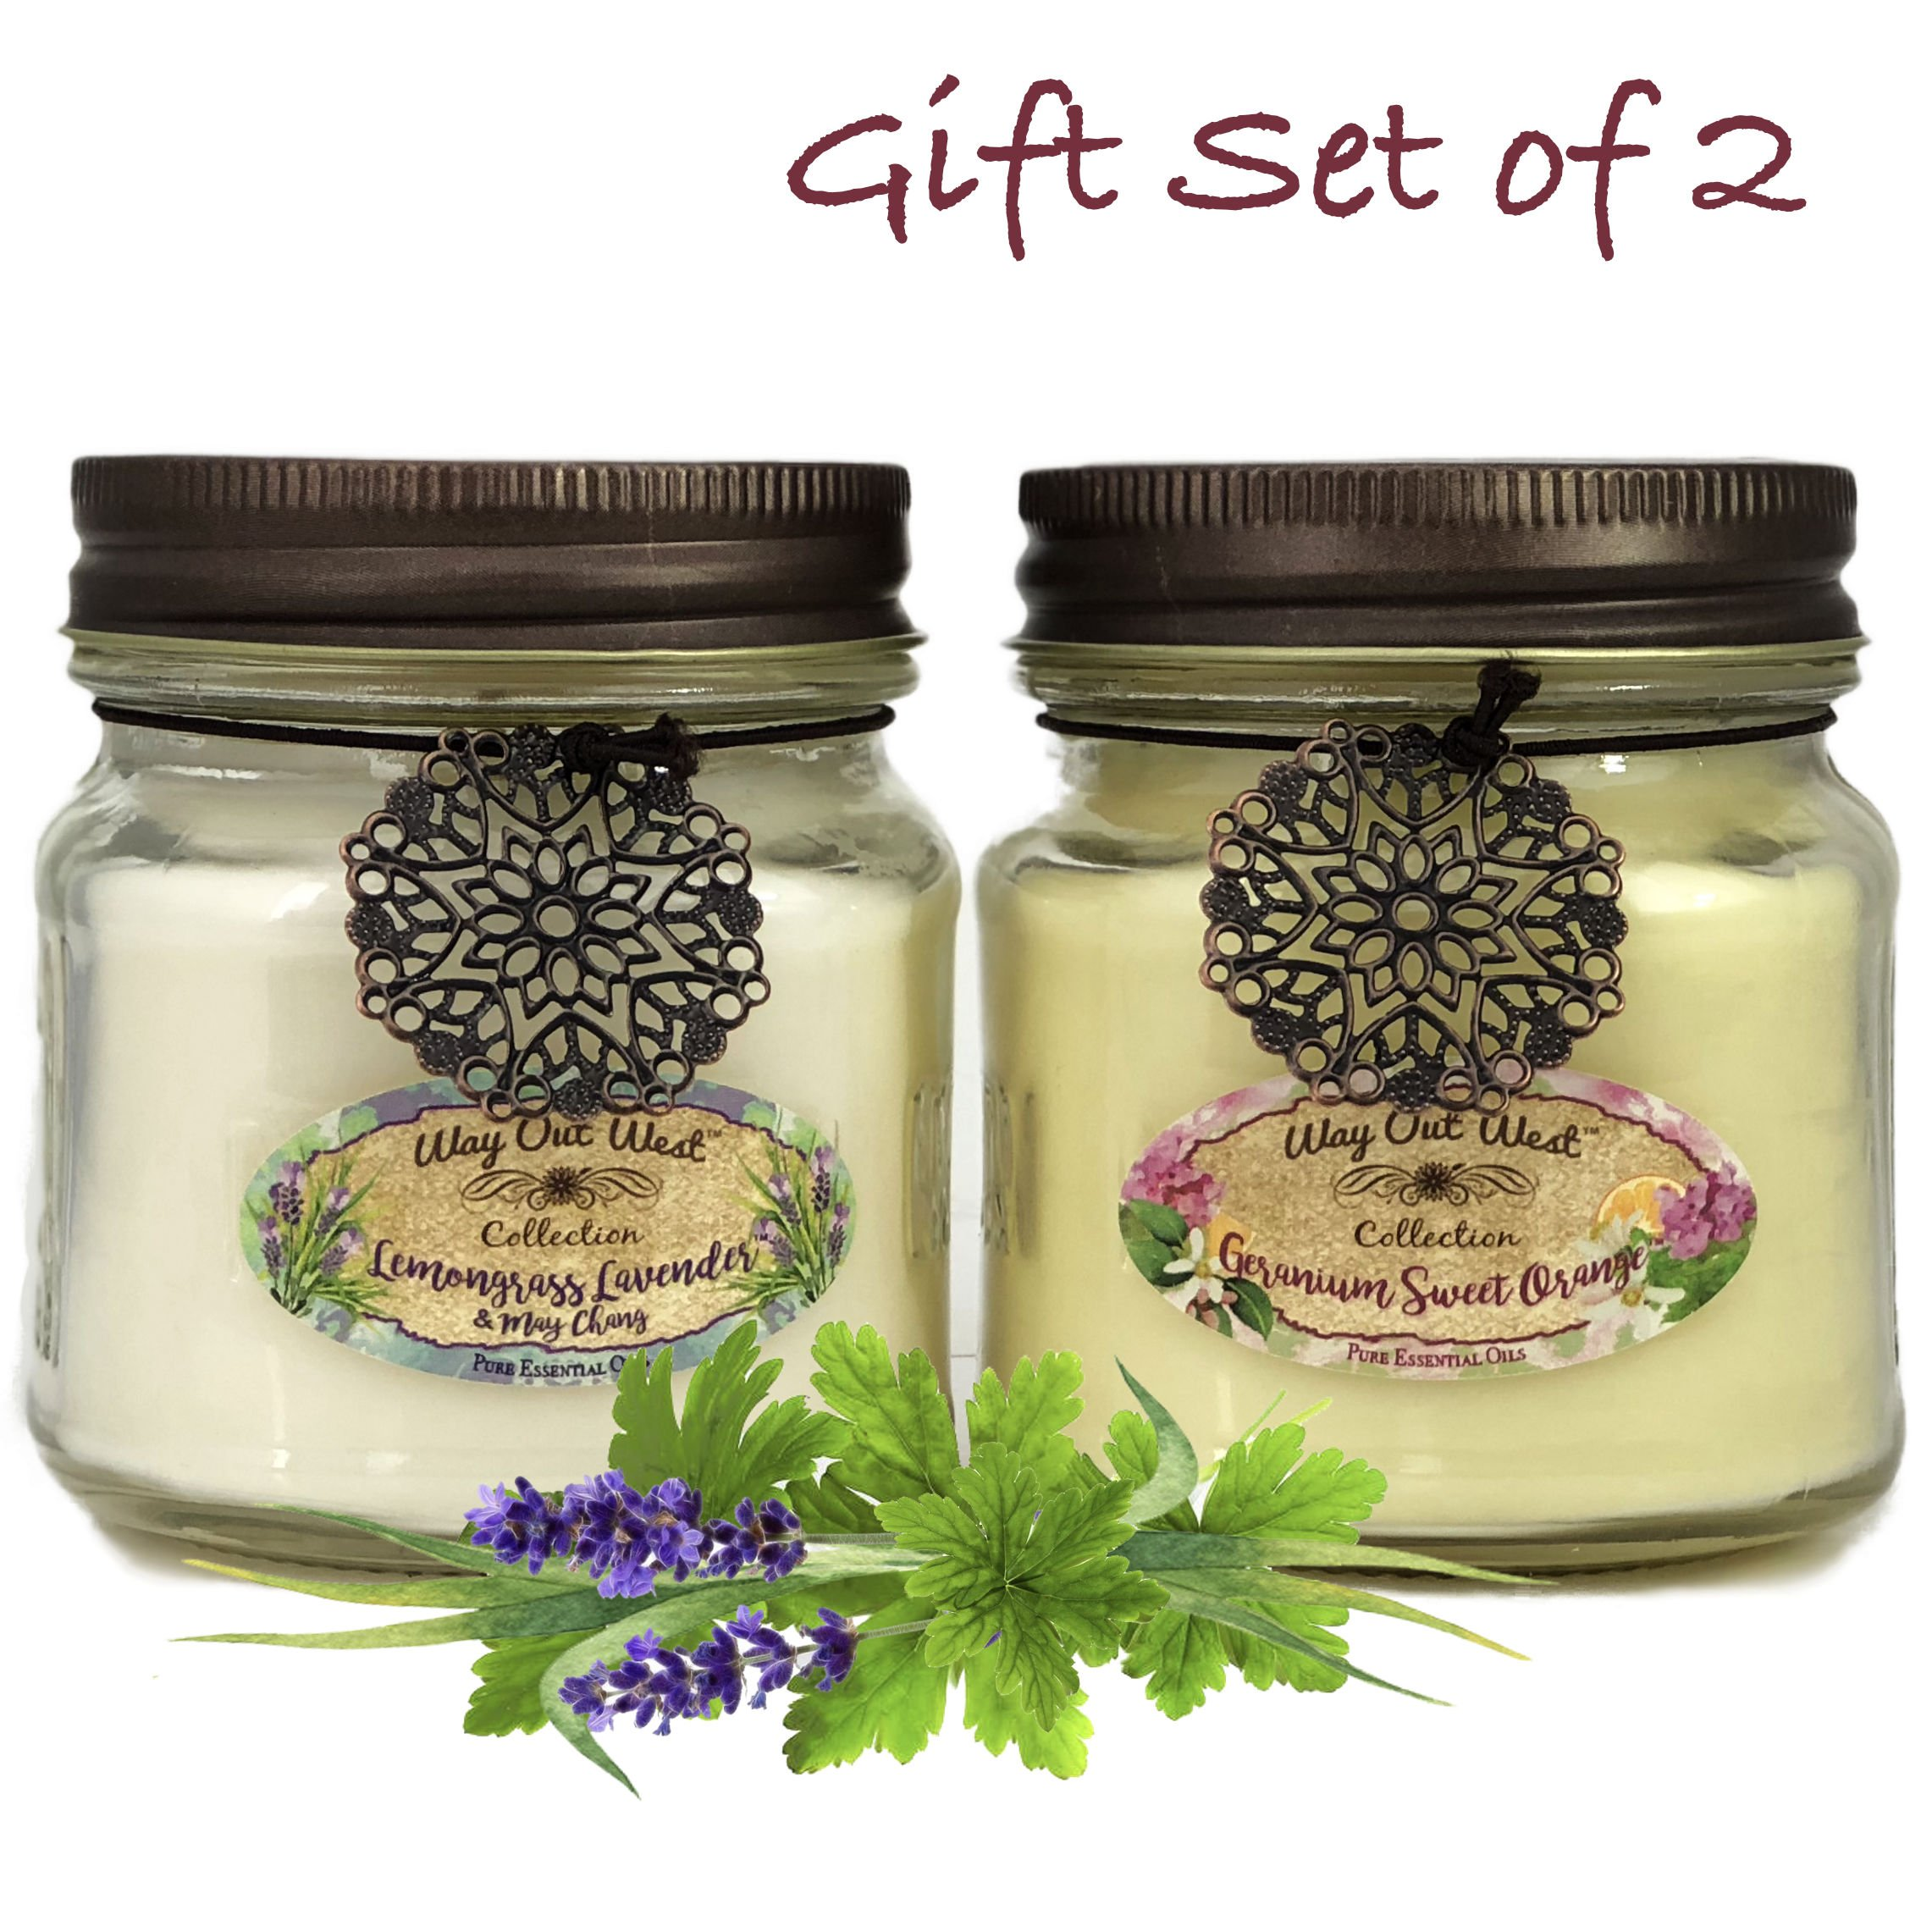 Way Out  West Aromatherapy Essential Oil Candles with Natural Geranium Sweet Orange and Lemongrass Lavender - Happy Pack Set of 2 Candles - Made in America by Way Out  West